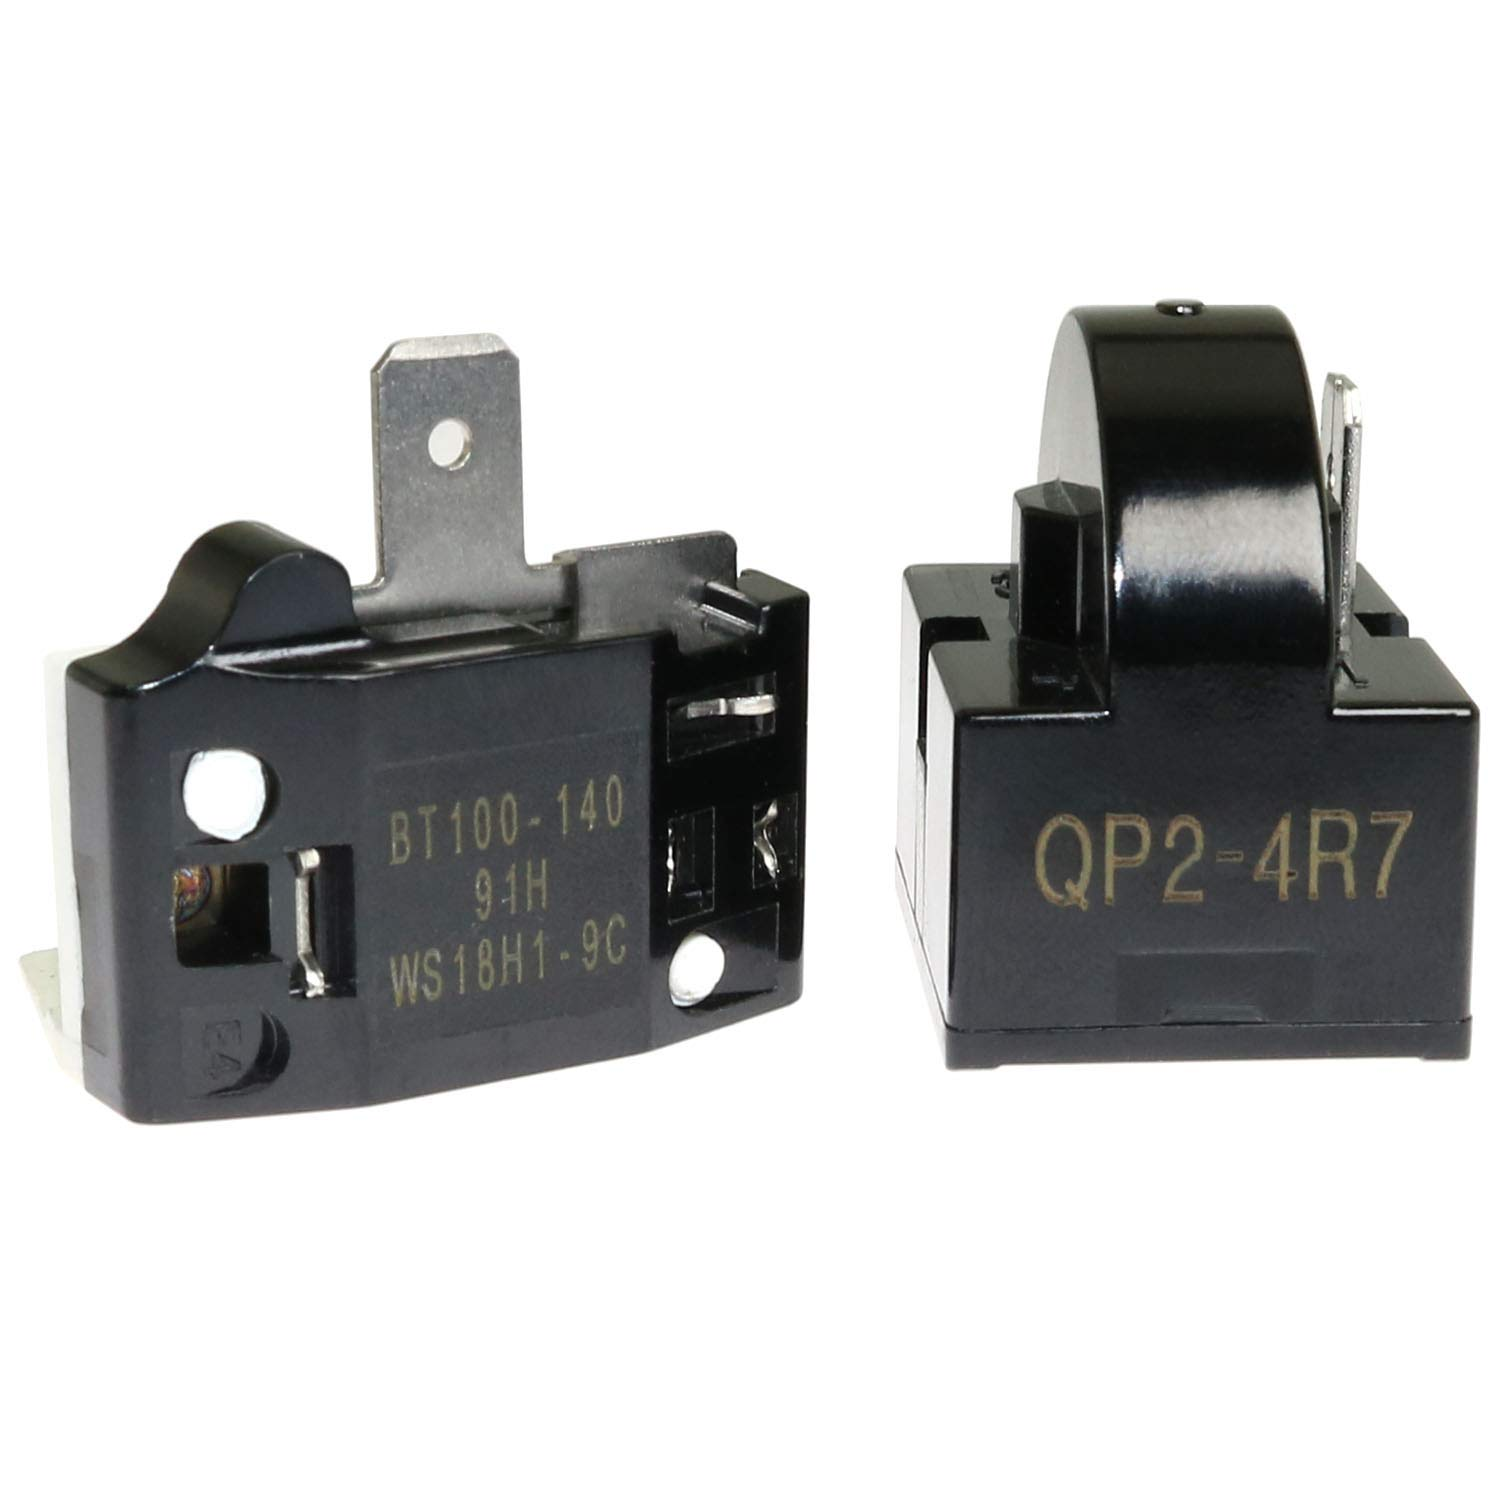 ToToT 1pcs QP-02-4.7 PTC Refrigerator Start Relay 1 Pin Coolers Compressor Starter 4.7 ohm with 1pcs Refrigerator Overload Protector 1/2HP